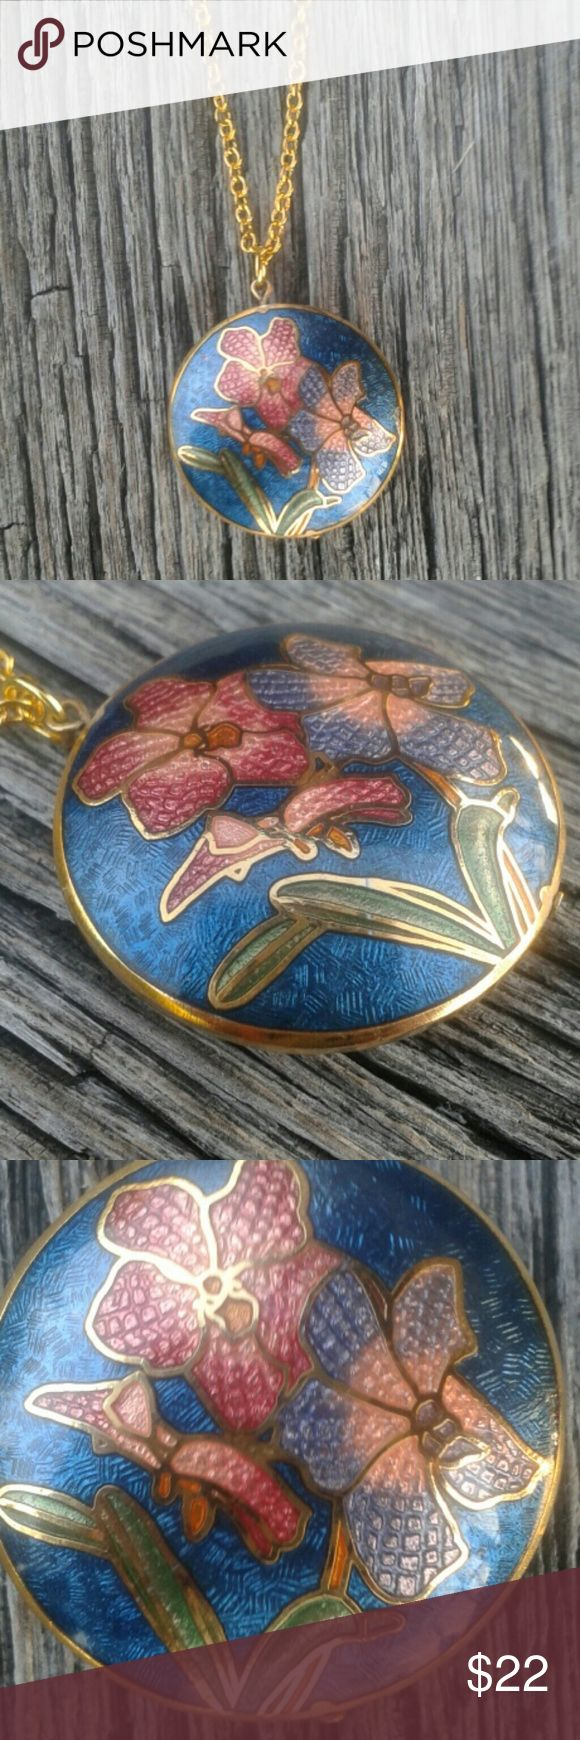 Enameled flower design necklace Beautiful multicolor enameled necklace with gold trim and gold chain. Design is on both sides. Handmade Jewelry Necklaces